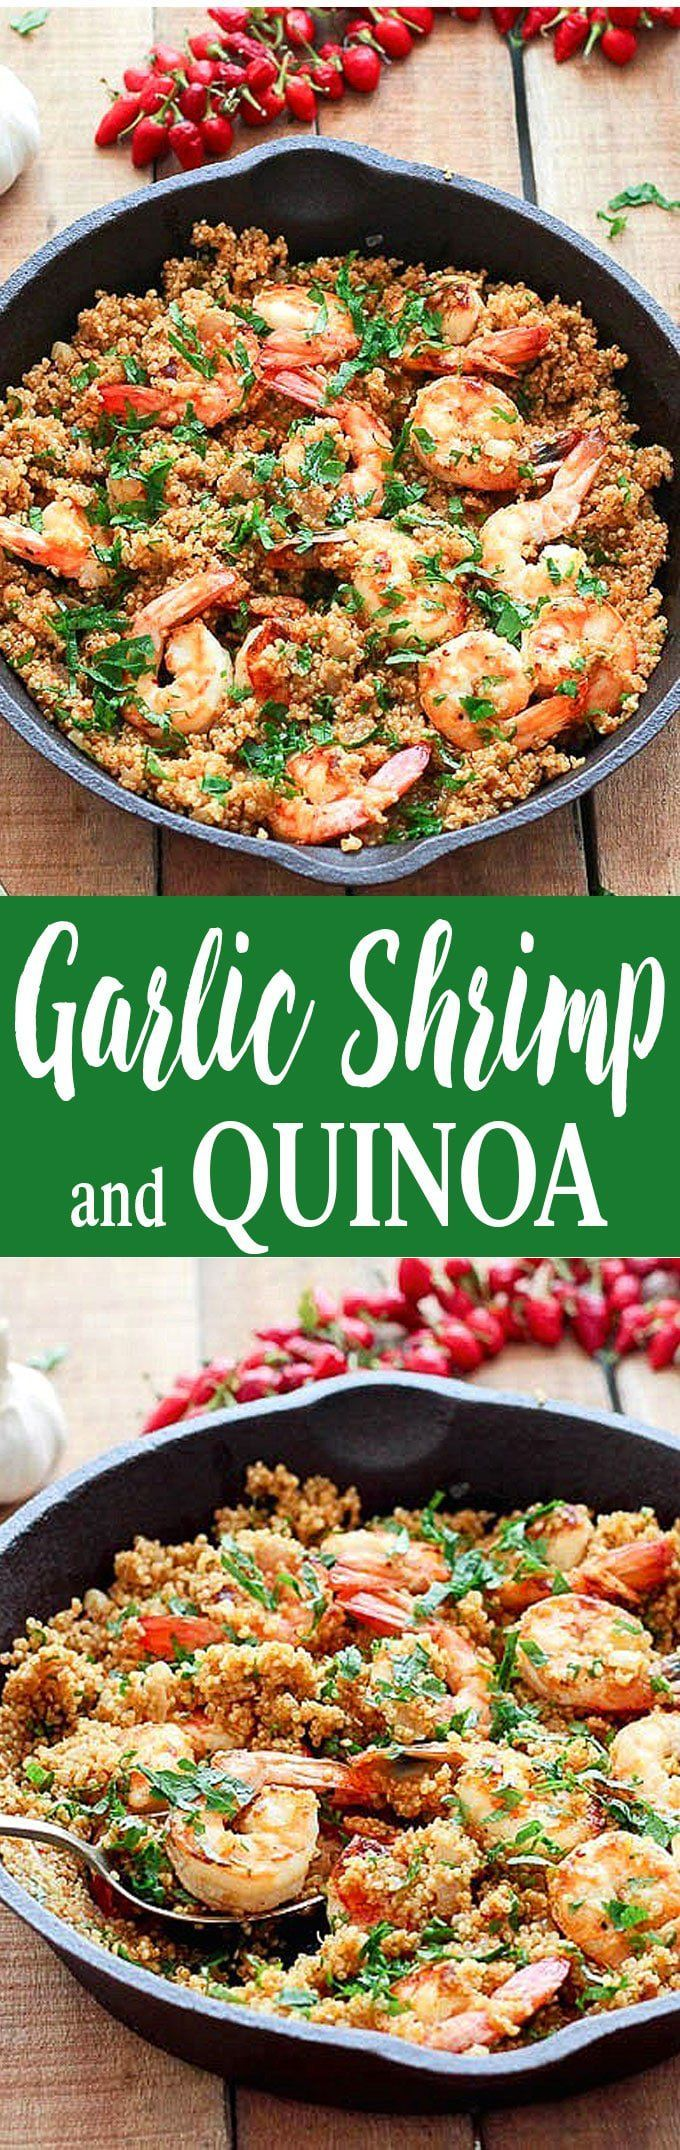 Garlic Shrimp and Quinoa - a simple, healthy and gluten-free one pan dinner ready in 35 minutes. Only 260 calories per serving via @easyasapplepie